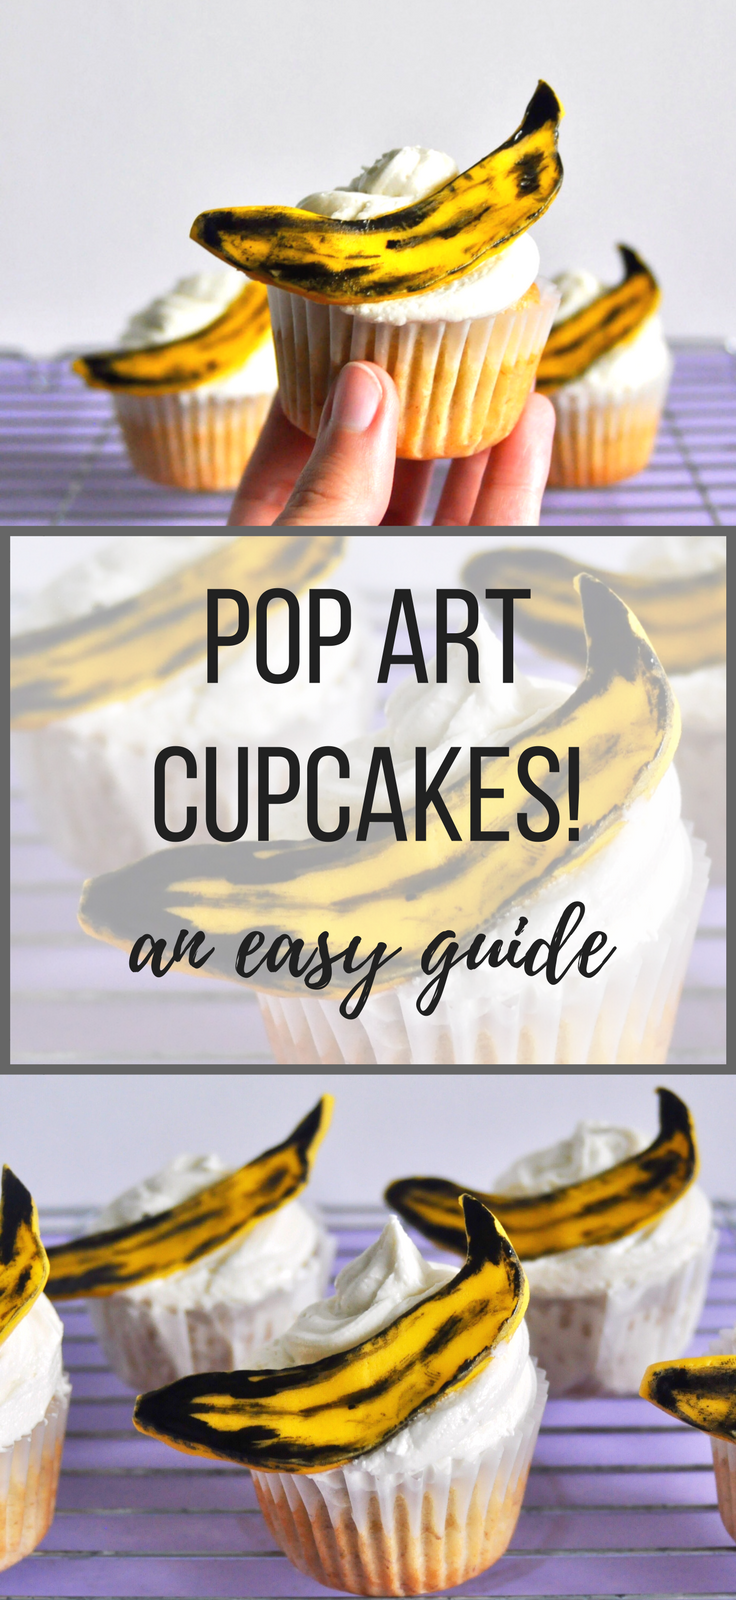 Cupcakes inspired by the genius Andy Warhol, get your pop art on with this banana cupcake recipe and seriously cute fondant toppers